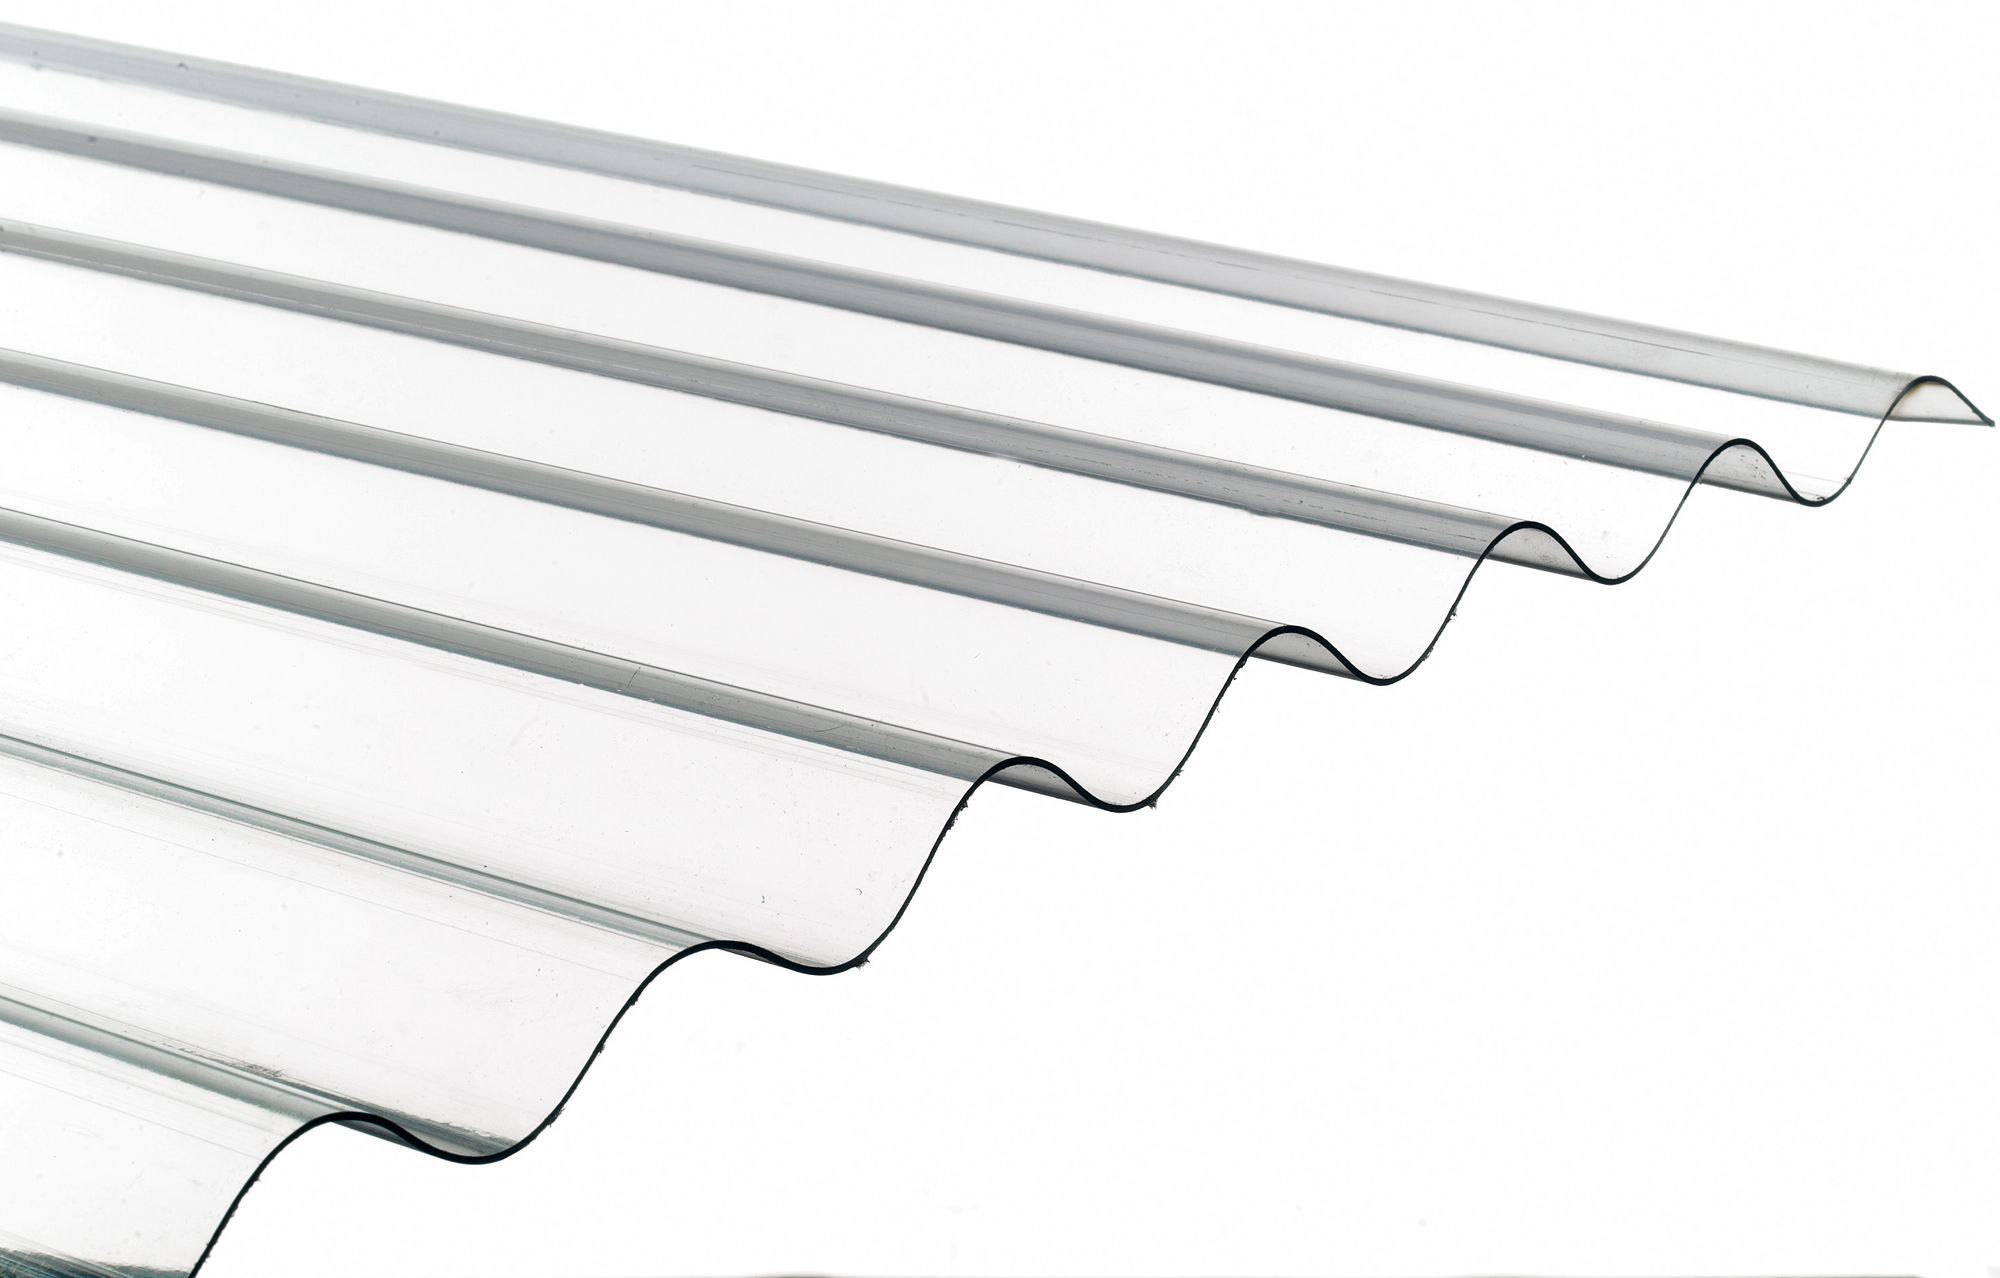 Translucent Pvc Roofing Sheet 2 4m X 762mm Departments